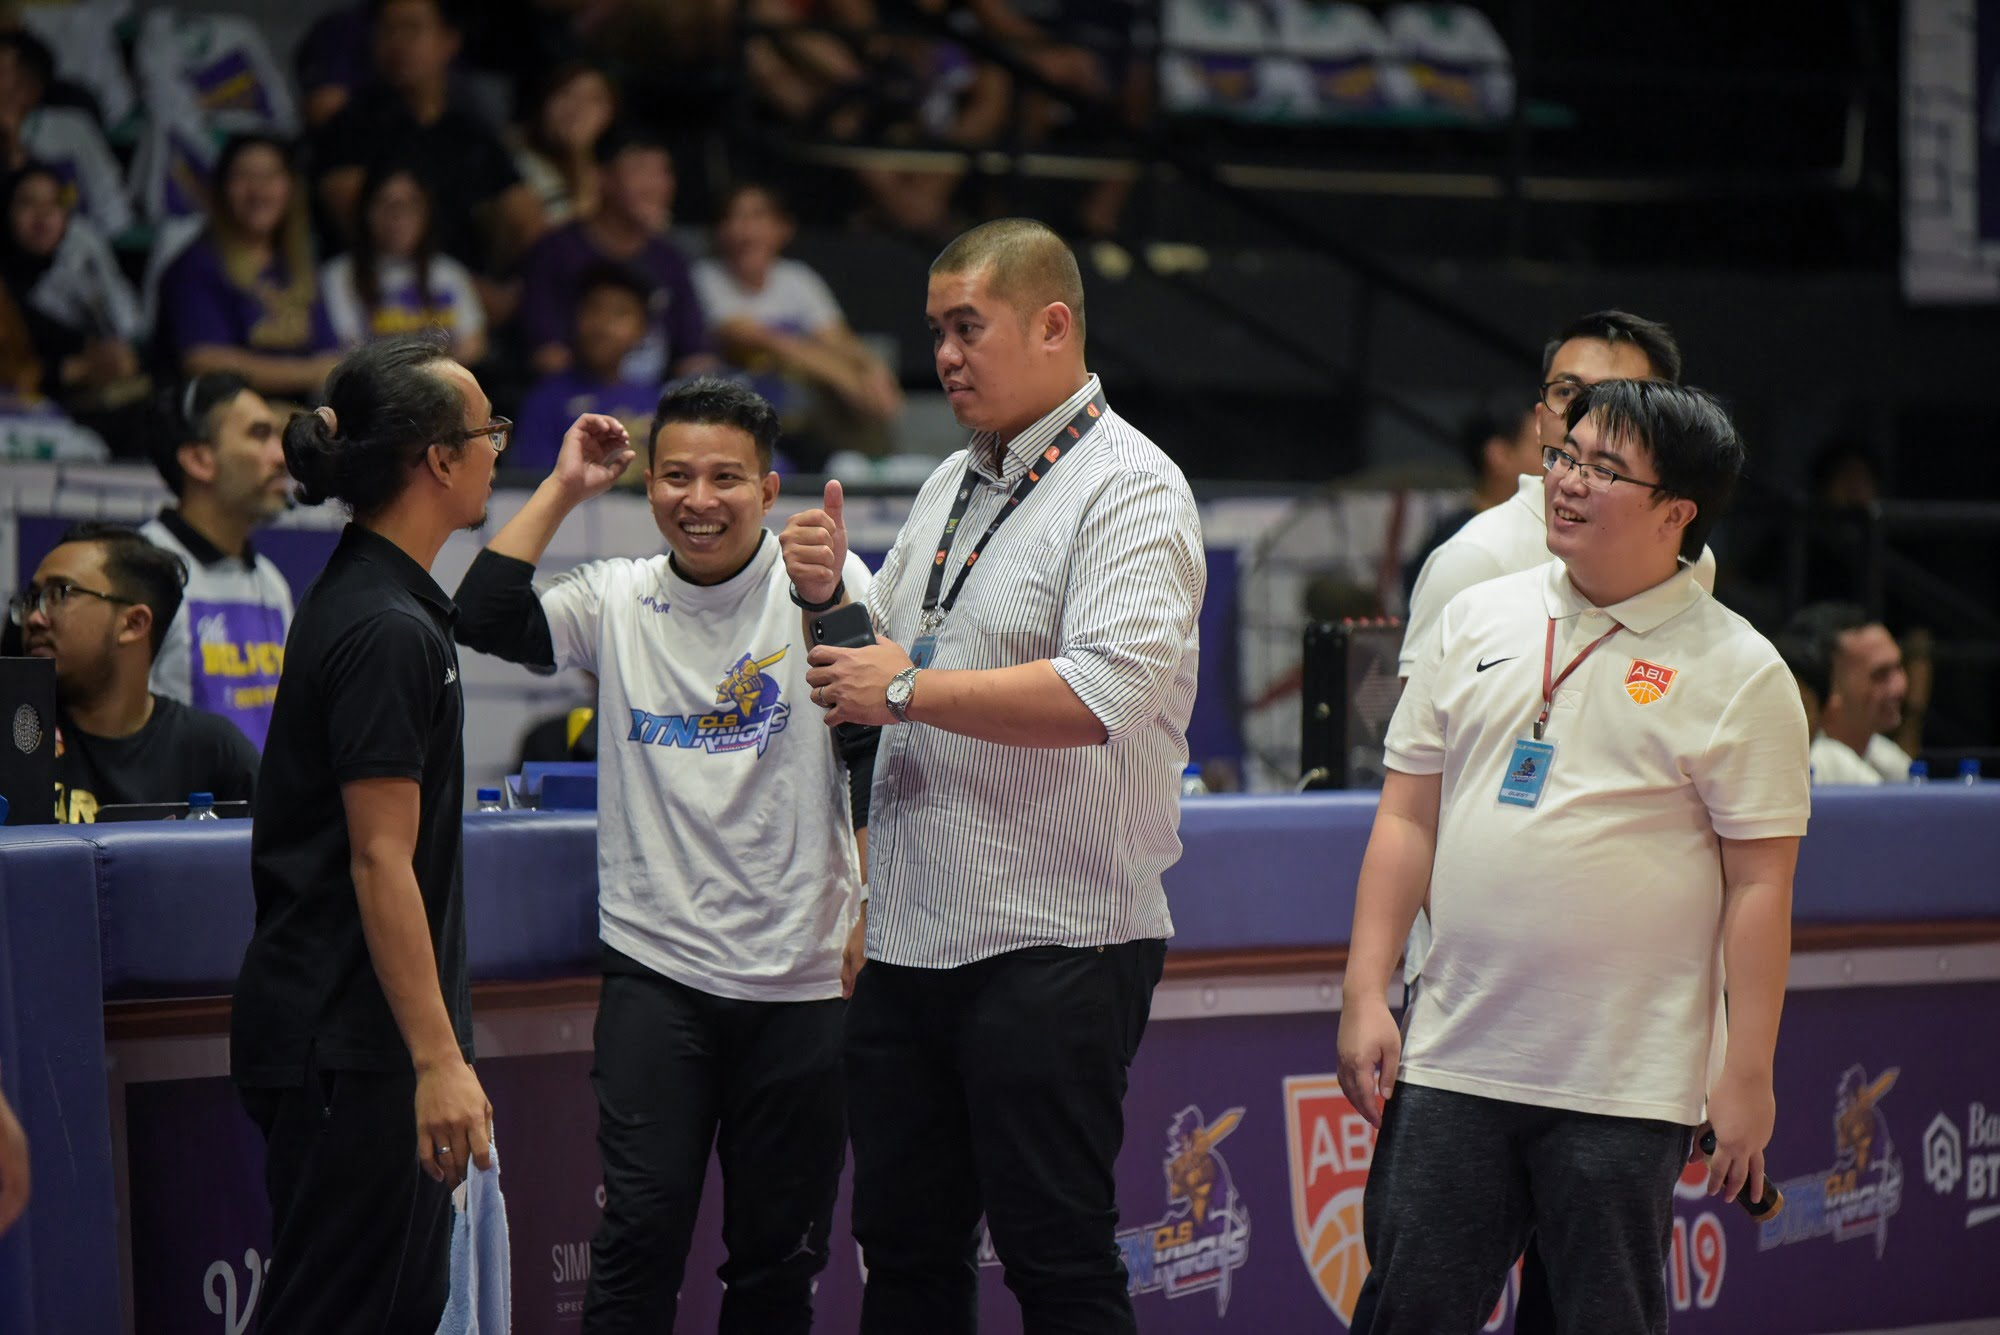 Tiebreaker Times Jericho Ilagan accepts fact that ABL will be last to resume operations ABL Basketball News  Jericho Ilagan abl season 10 2019-20 ABL Season